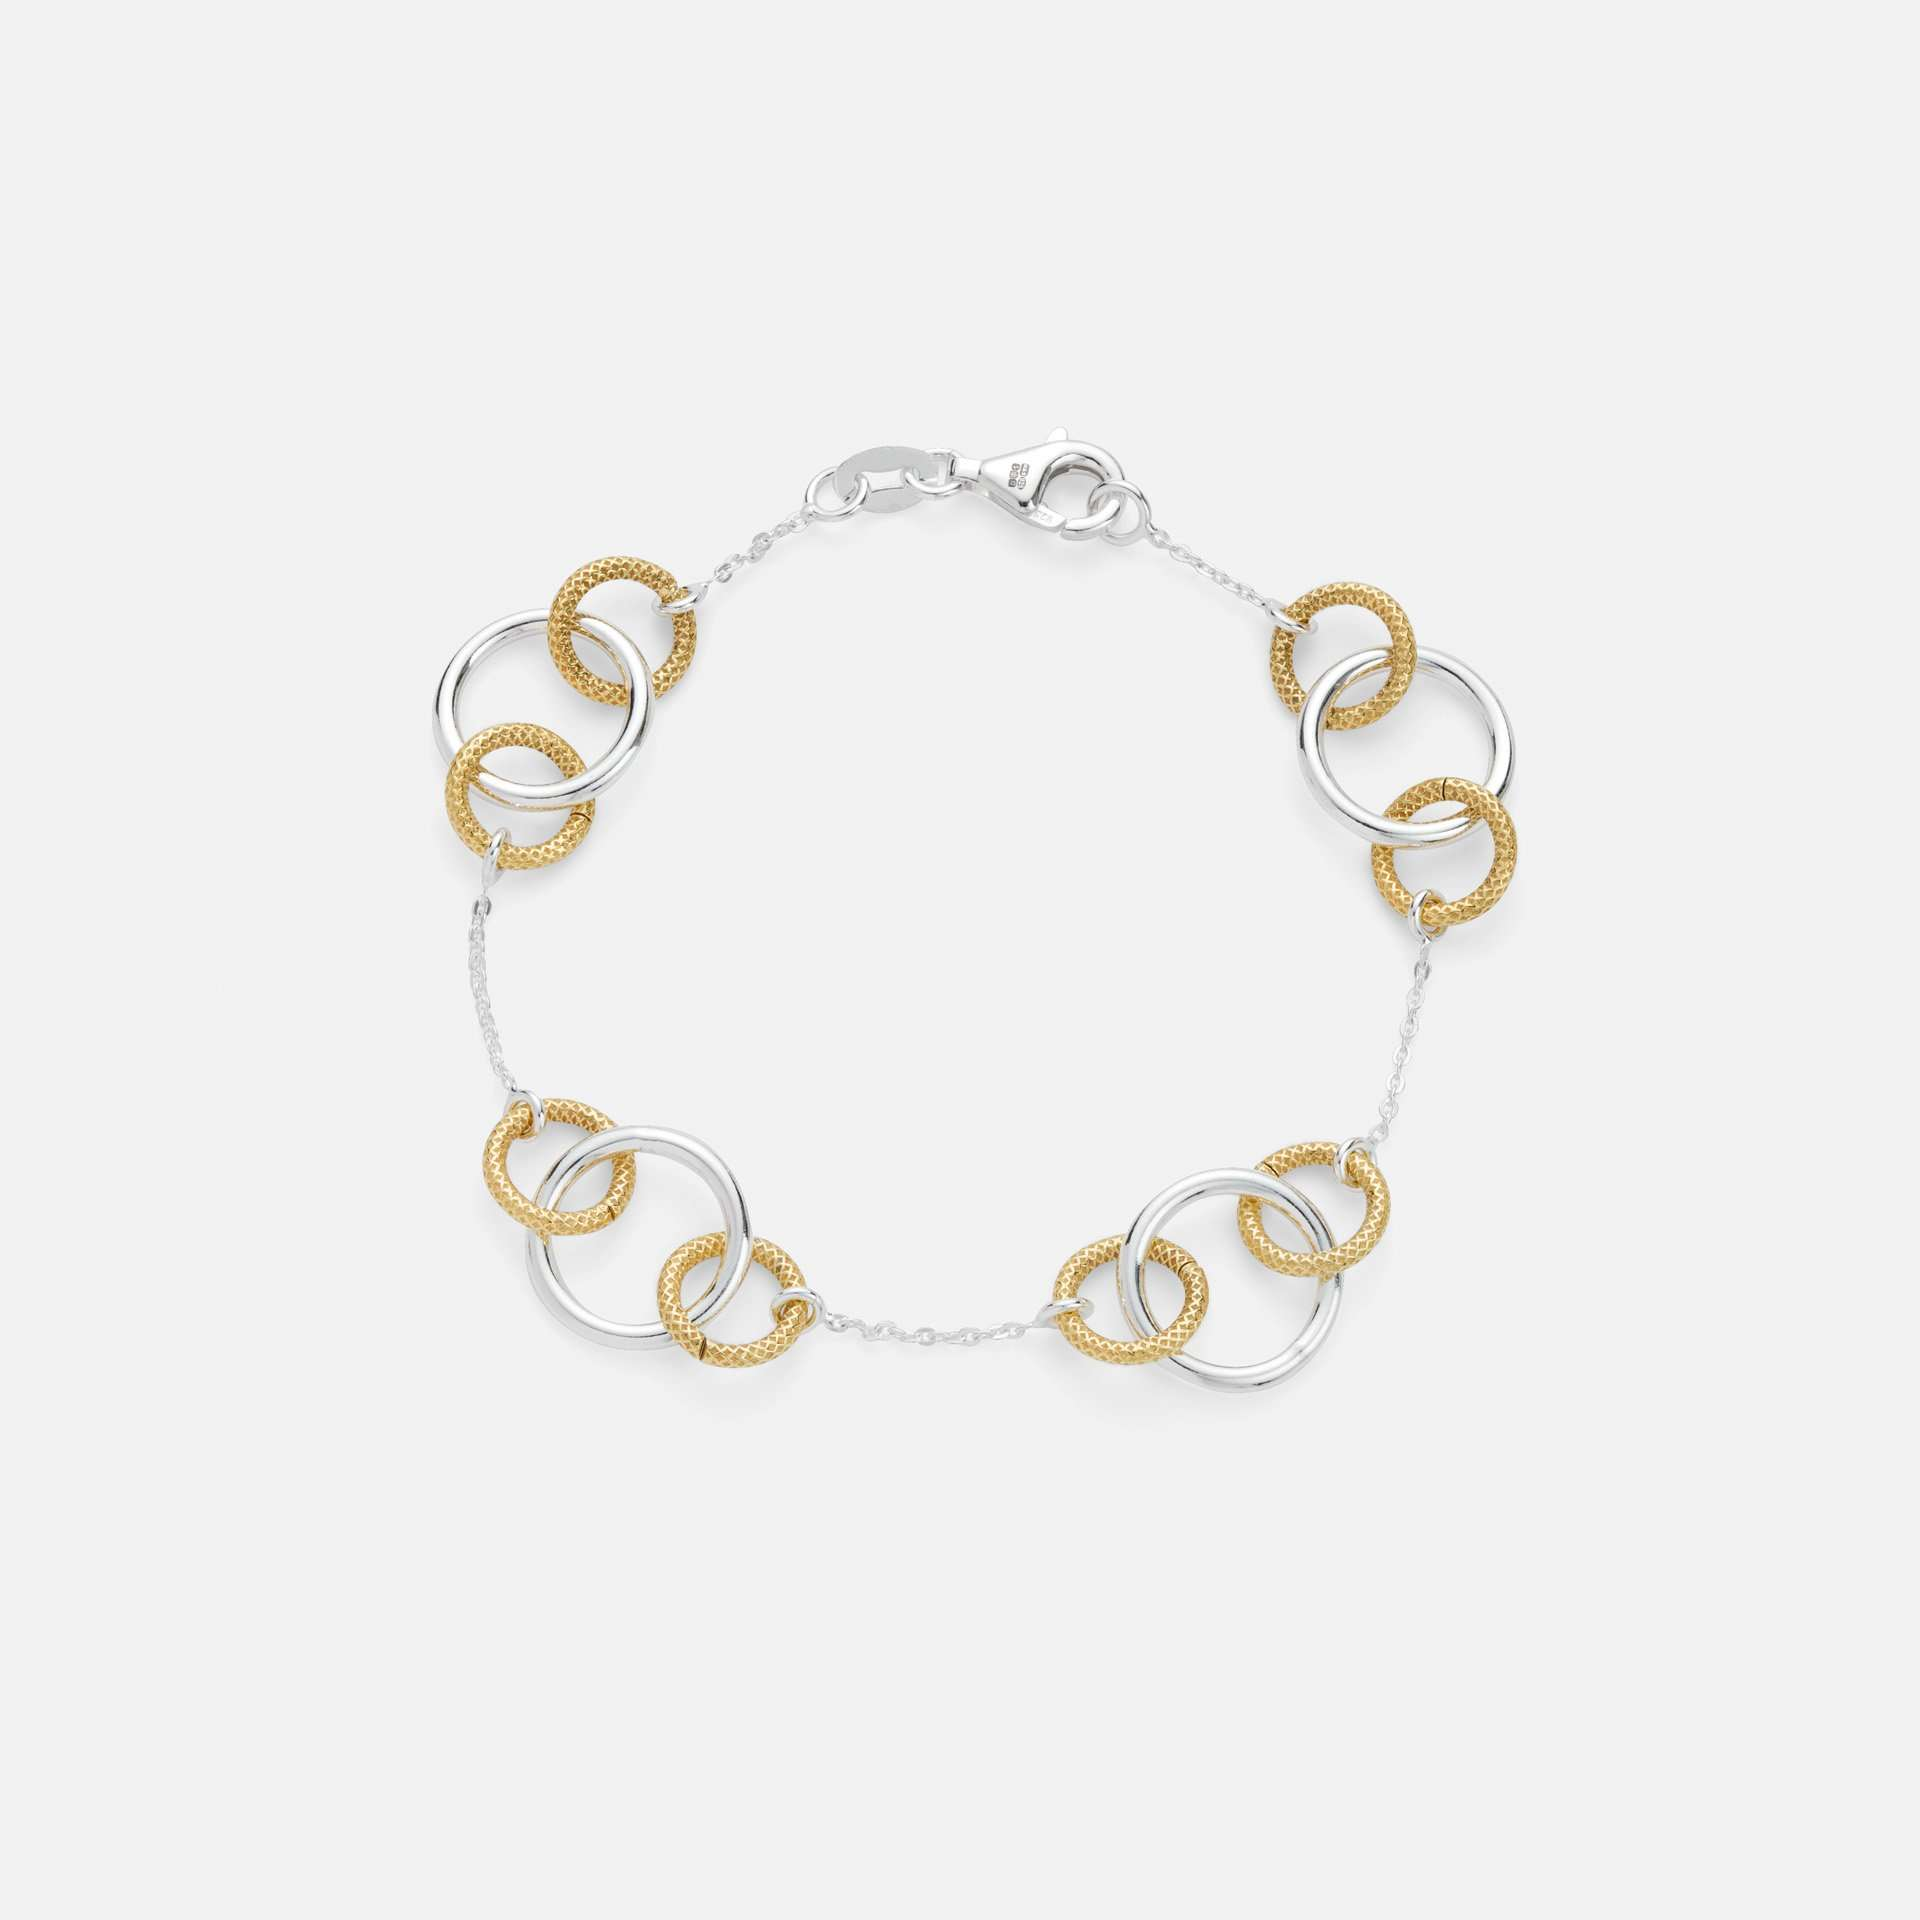 Beauly Rings Bracelet Silver and Gold